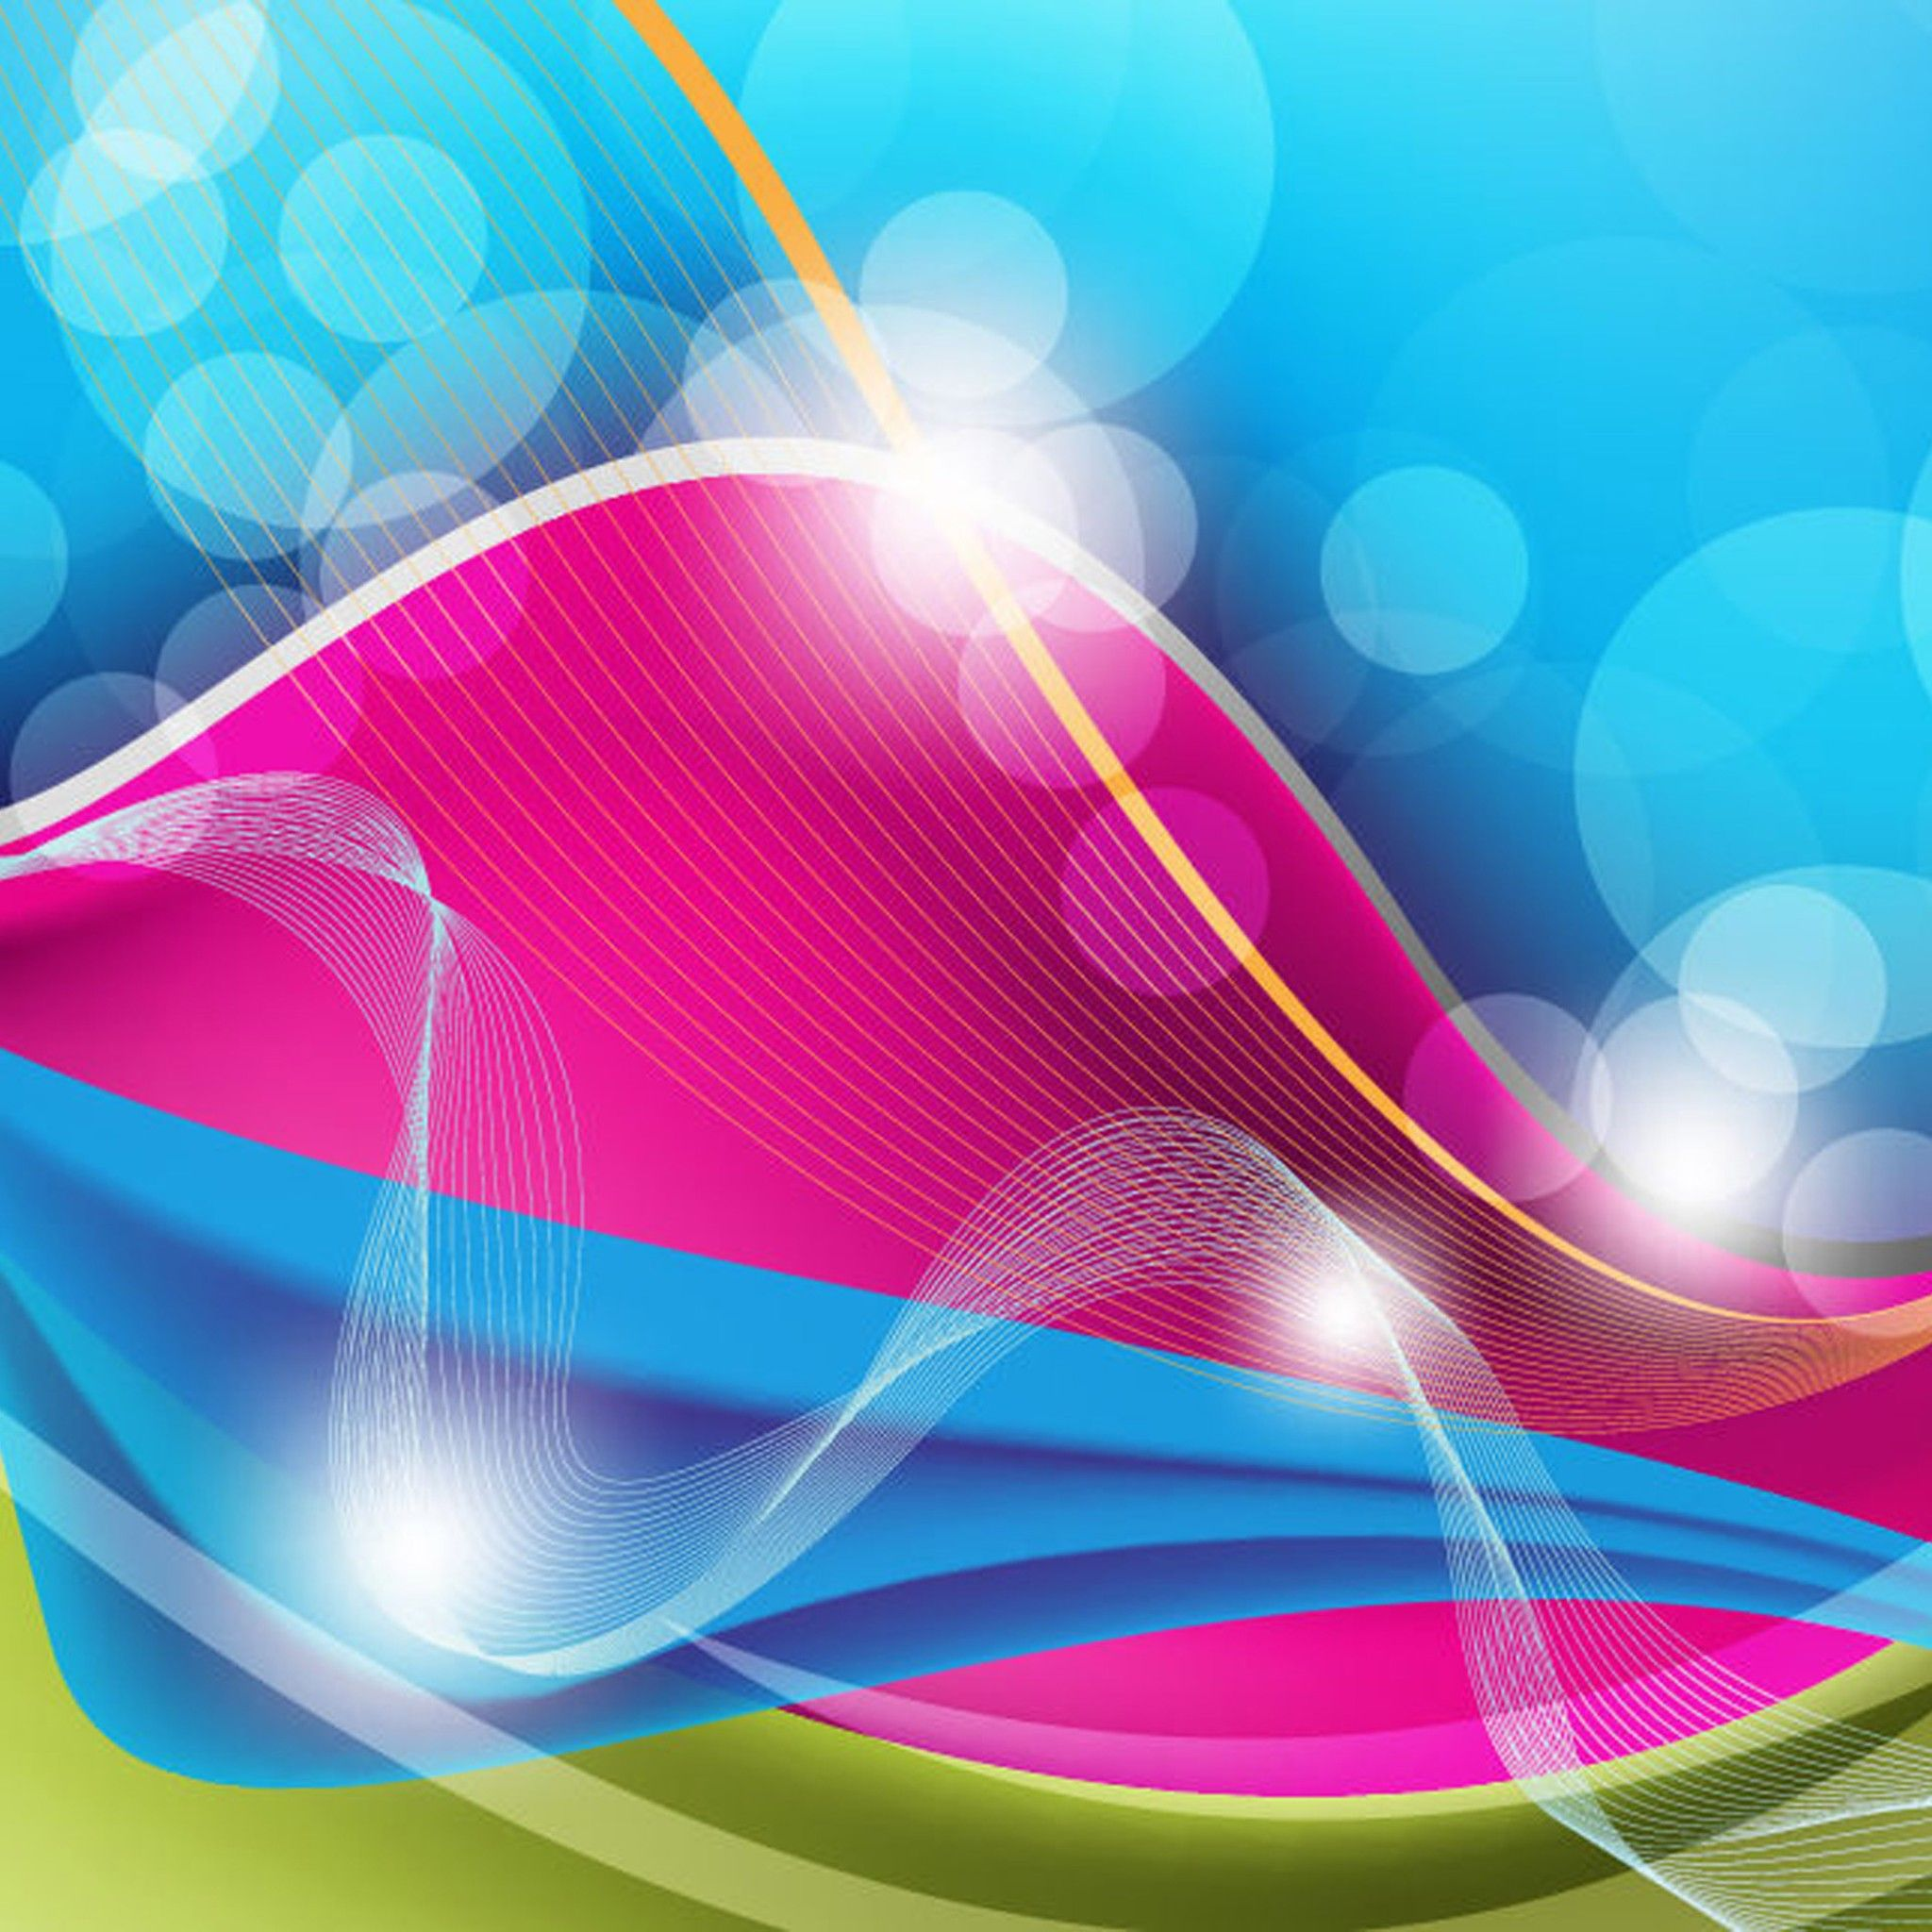 Colorful Abstract Id03 Iphone Wallpapers Iphone 5 S 4 S 3g